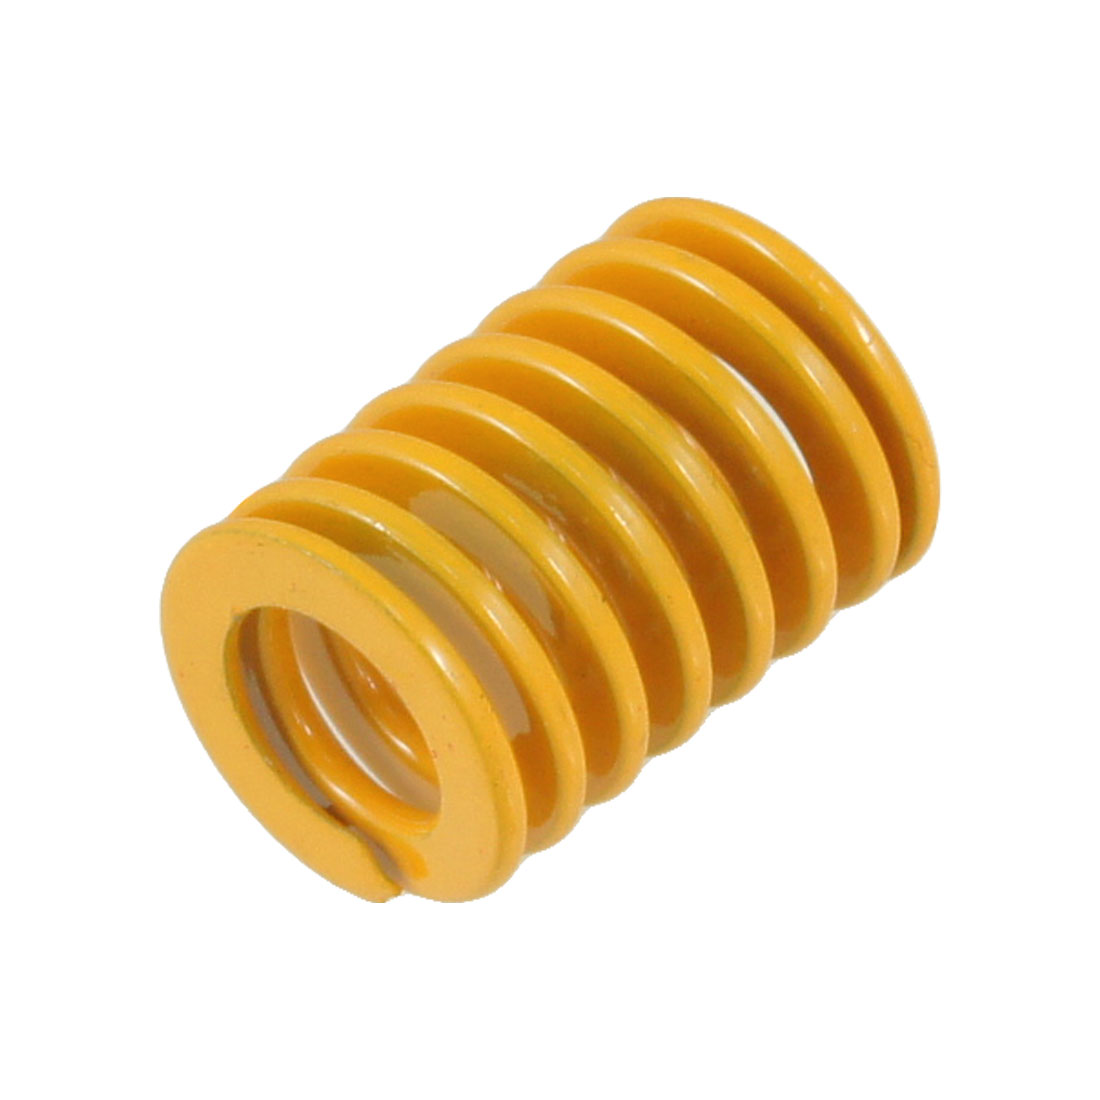 Uxcell Od 18Mm Id 9Mm Orange Metal Tubular Section Mould Die Spring Long 25mm | 30mm 35mm 40mm 50mm 60mm